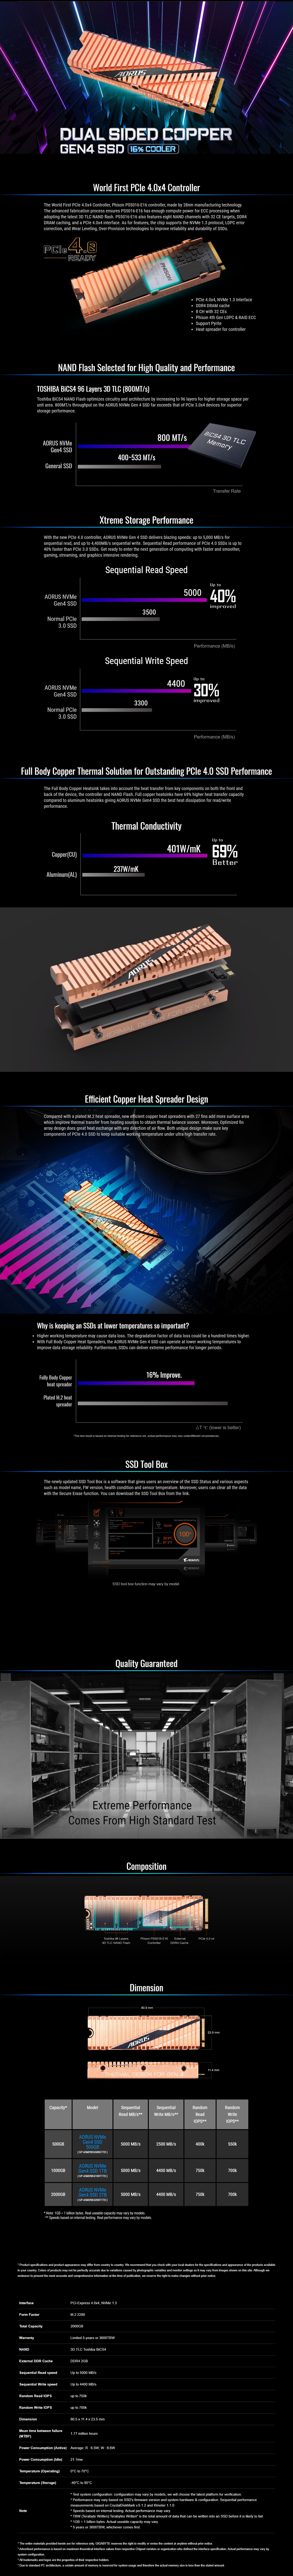 A large marketing image providing additional information about the product Gigabyte AORUS 2TB Gen 4 M.2 NVMe SSD - Additional alt info not provided